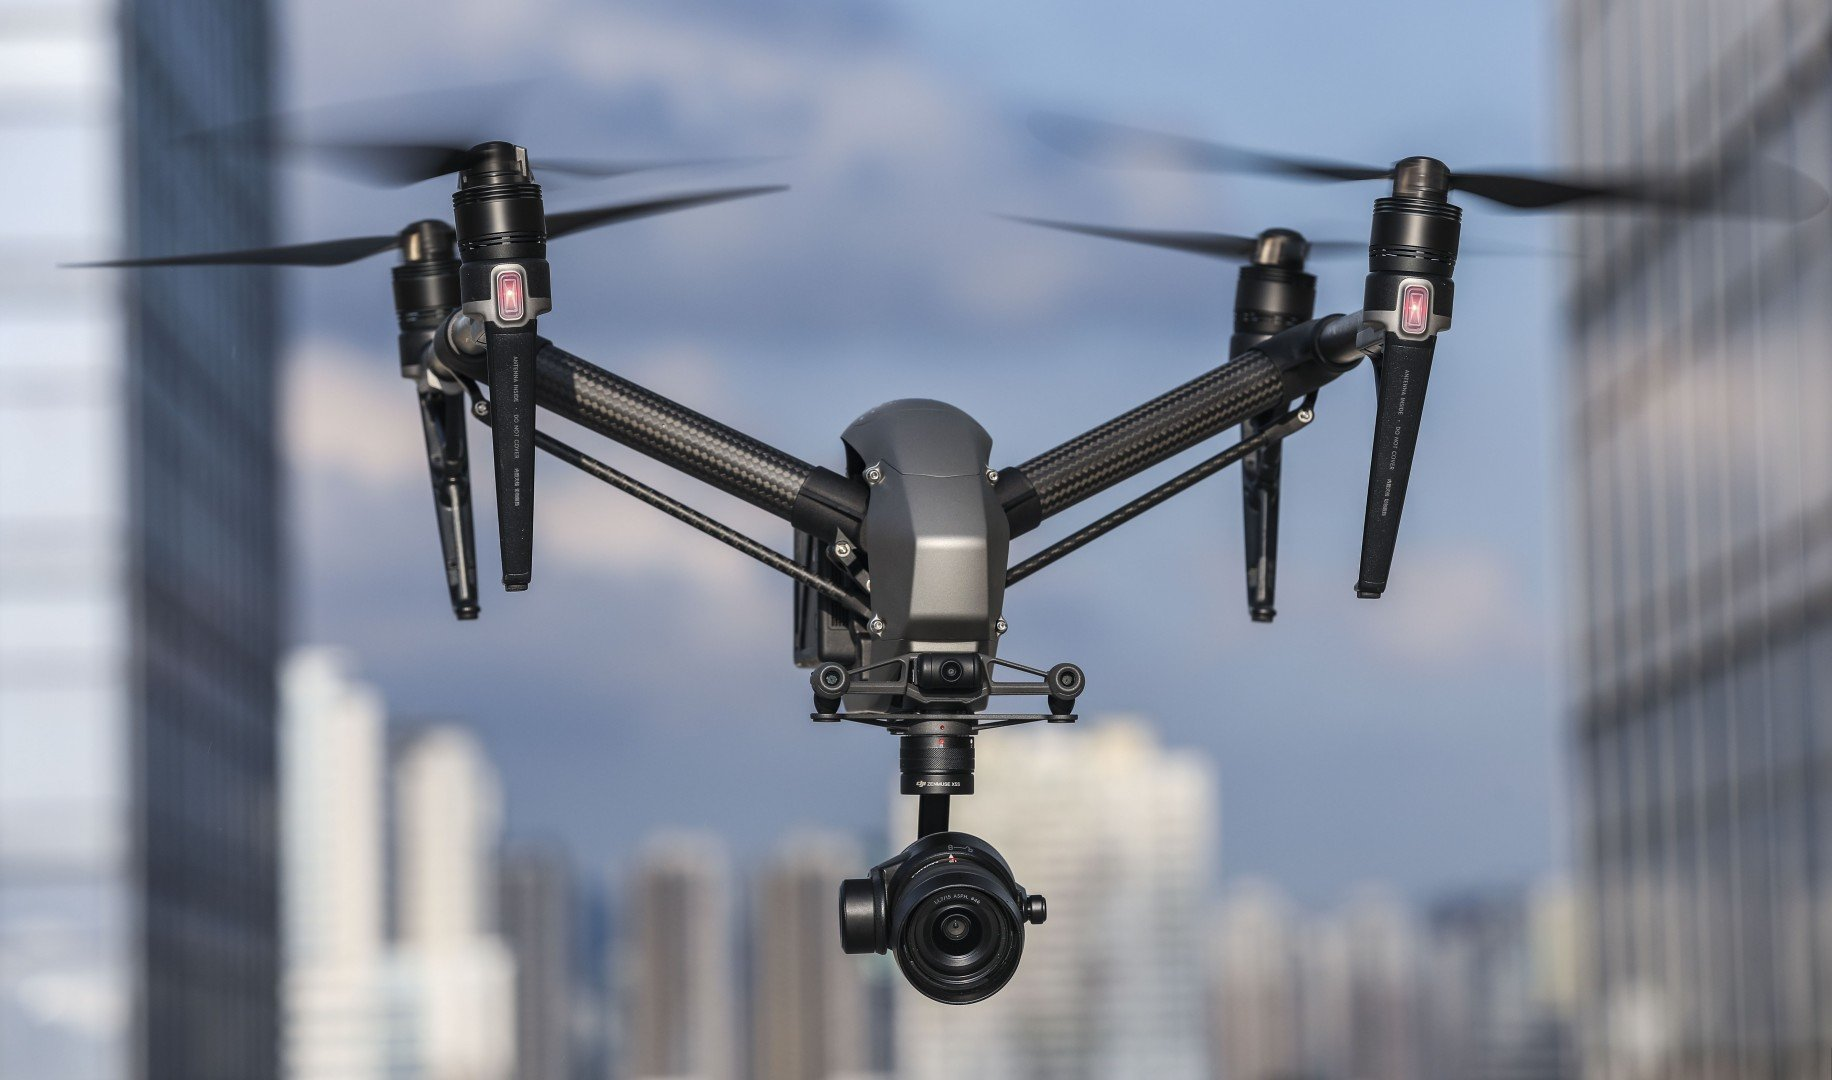 How DJI went from university dorm project to world's biggest